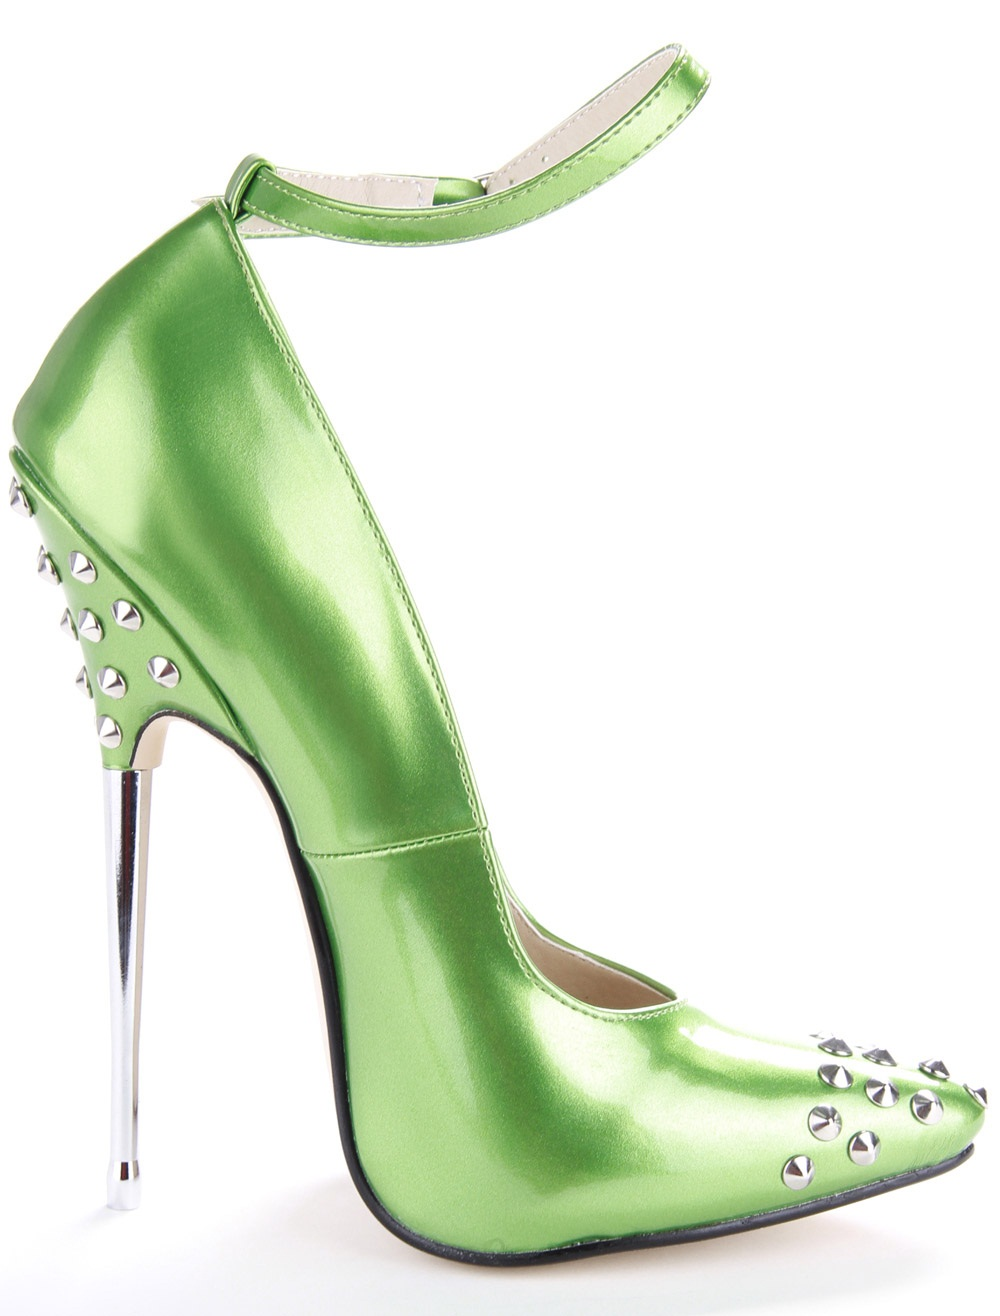 newest sexy pumps green blue black Patent leather metal 16 cm super high heels pumps size 45 rivet pointed toe mary janes shoes